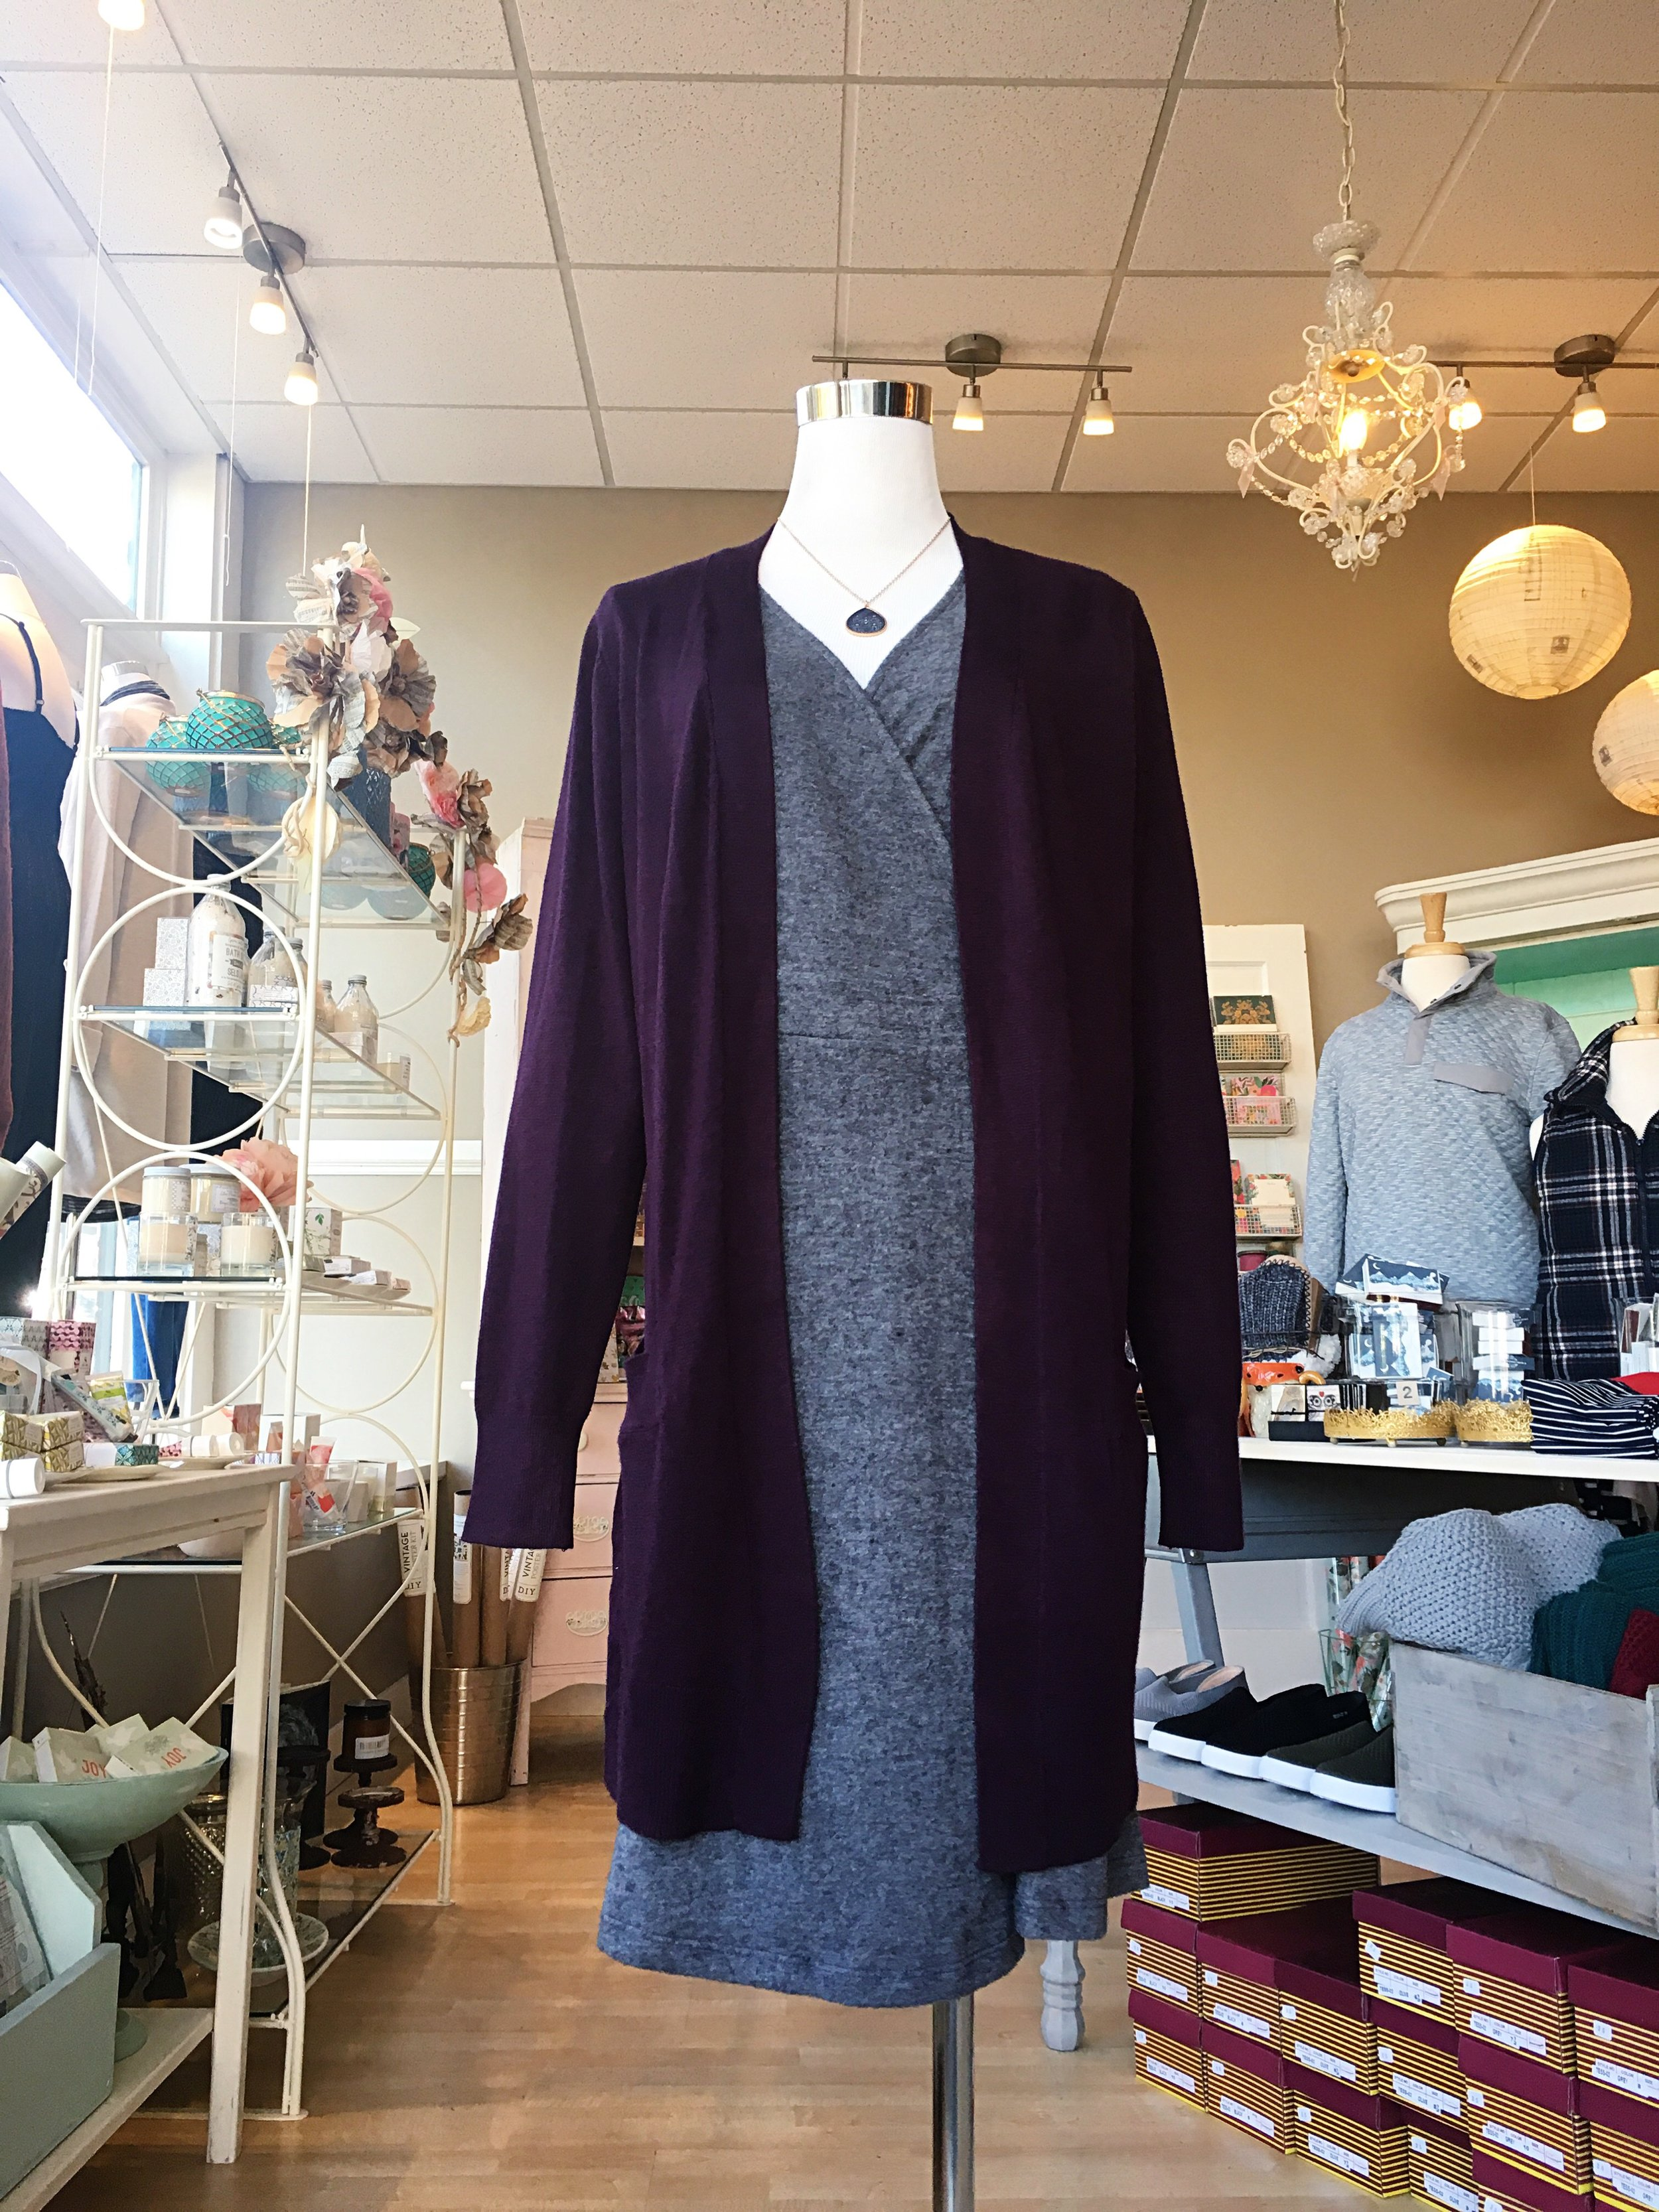 We have these long cardigans in purple, charcoal gray, light gray, navy and black. Versatile and stylish, they are perfect to layer over jeans + sweaters as well as dresses.